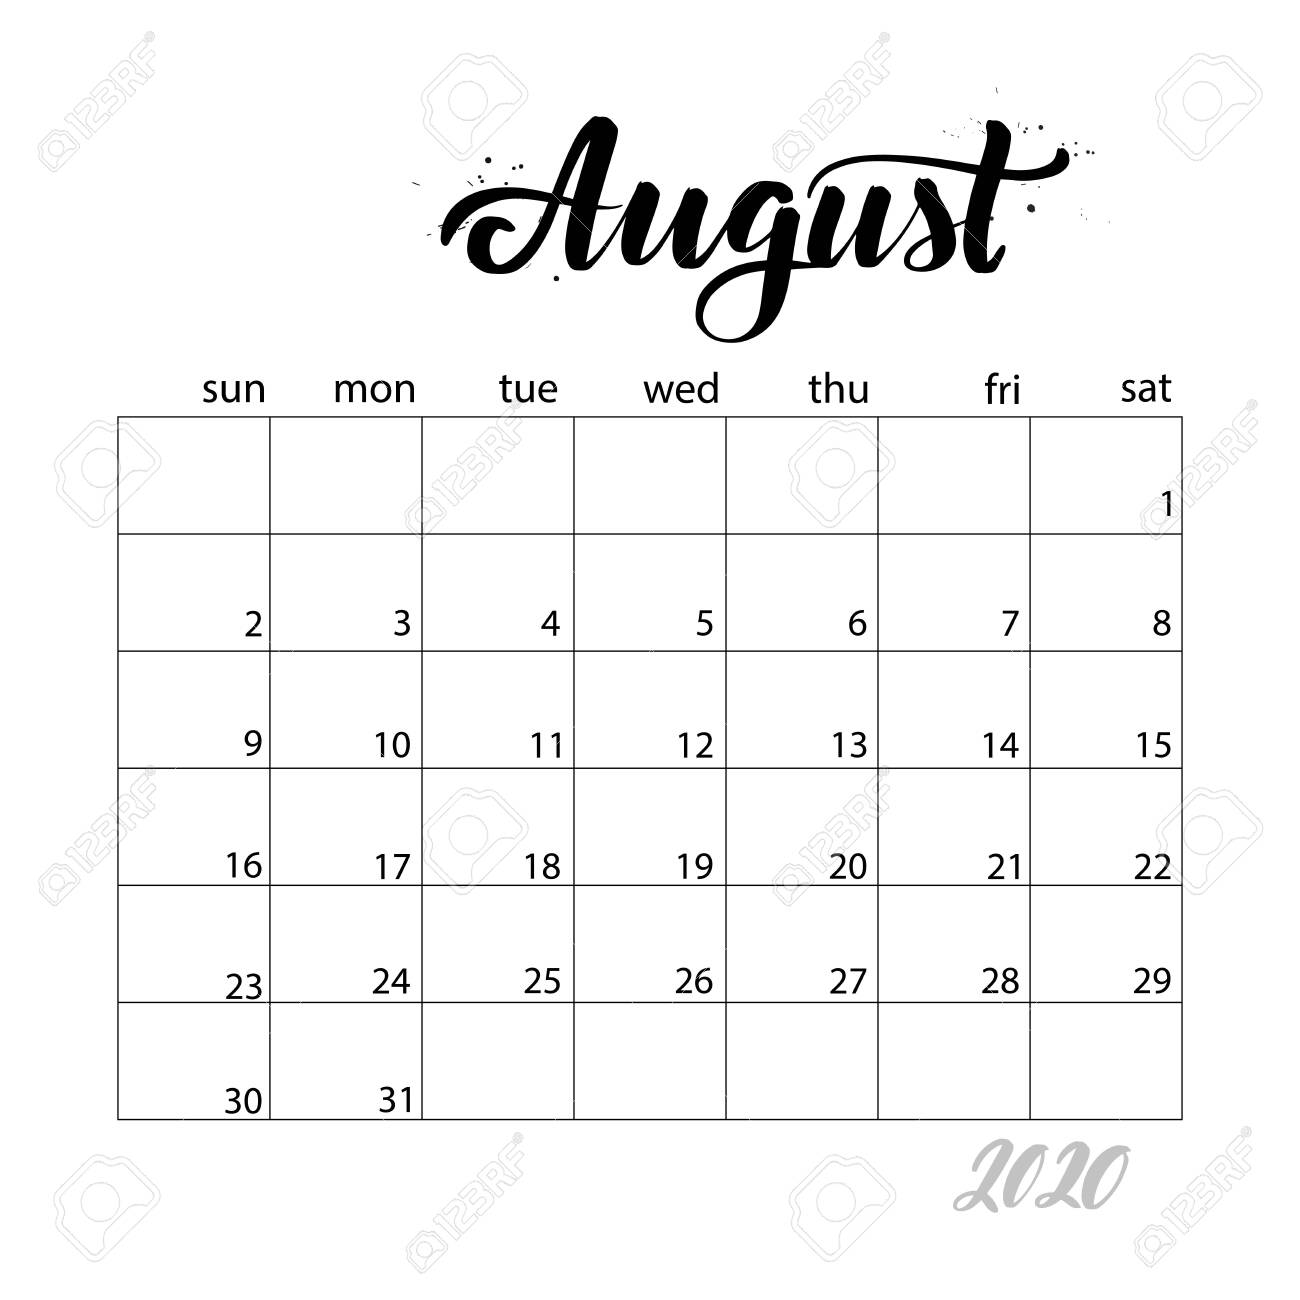 image relating to Stylish Planners and Organizers named August. Regular calendar for 2020 calendar year. Handwritten ground breaking calligraphy..